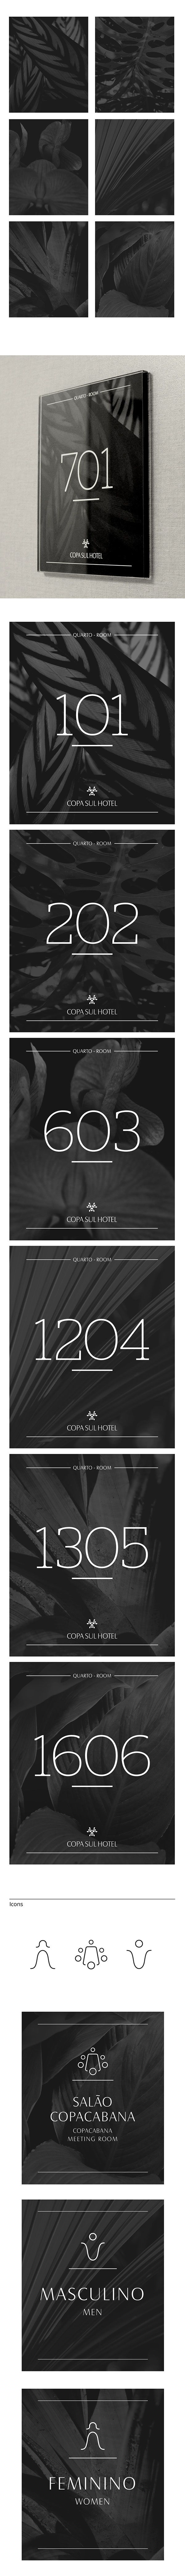 Copa Sul Hotel Signage by Studio Fernanda Schmidt on Behance